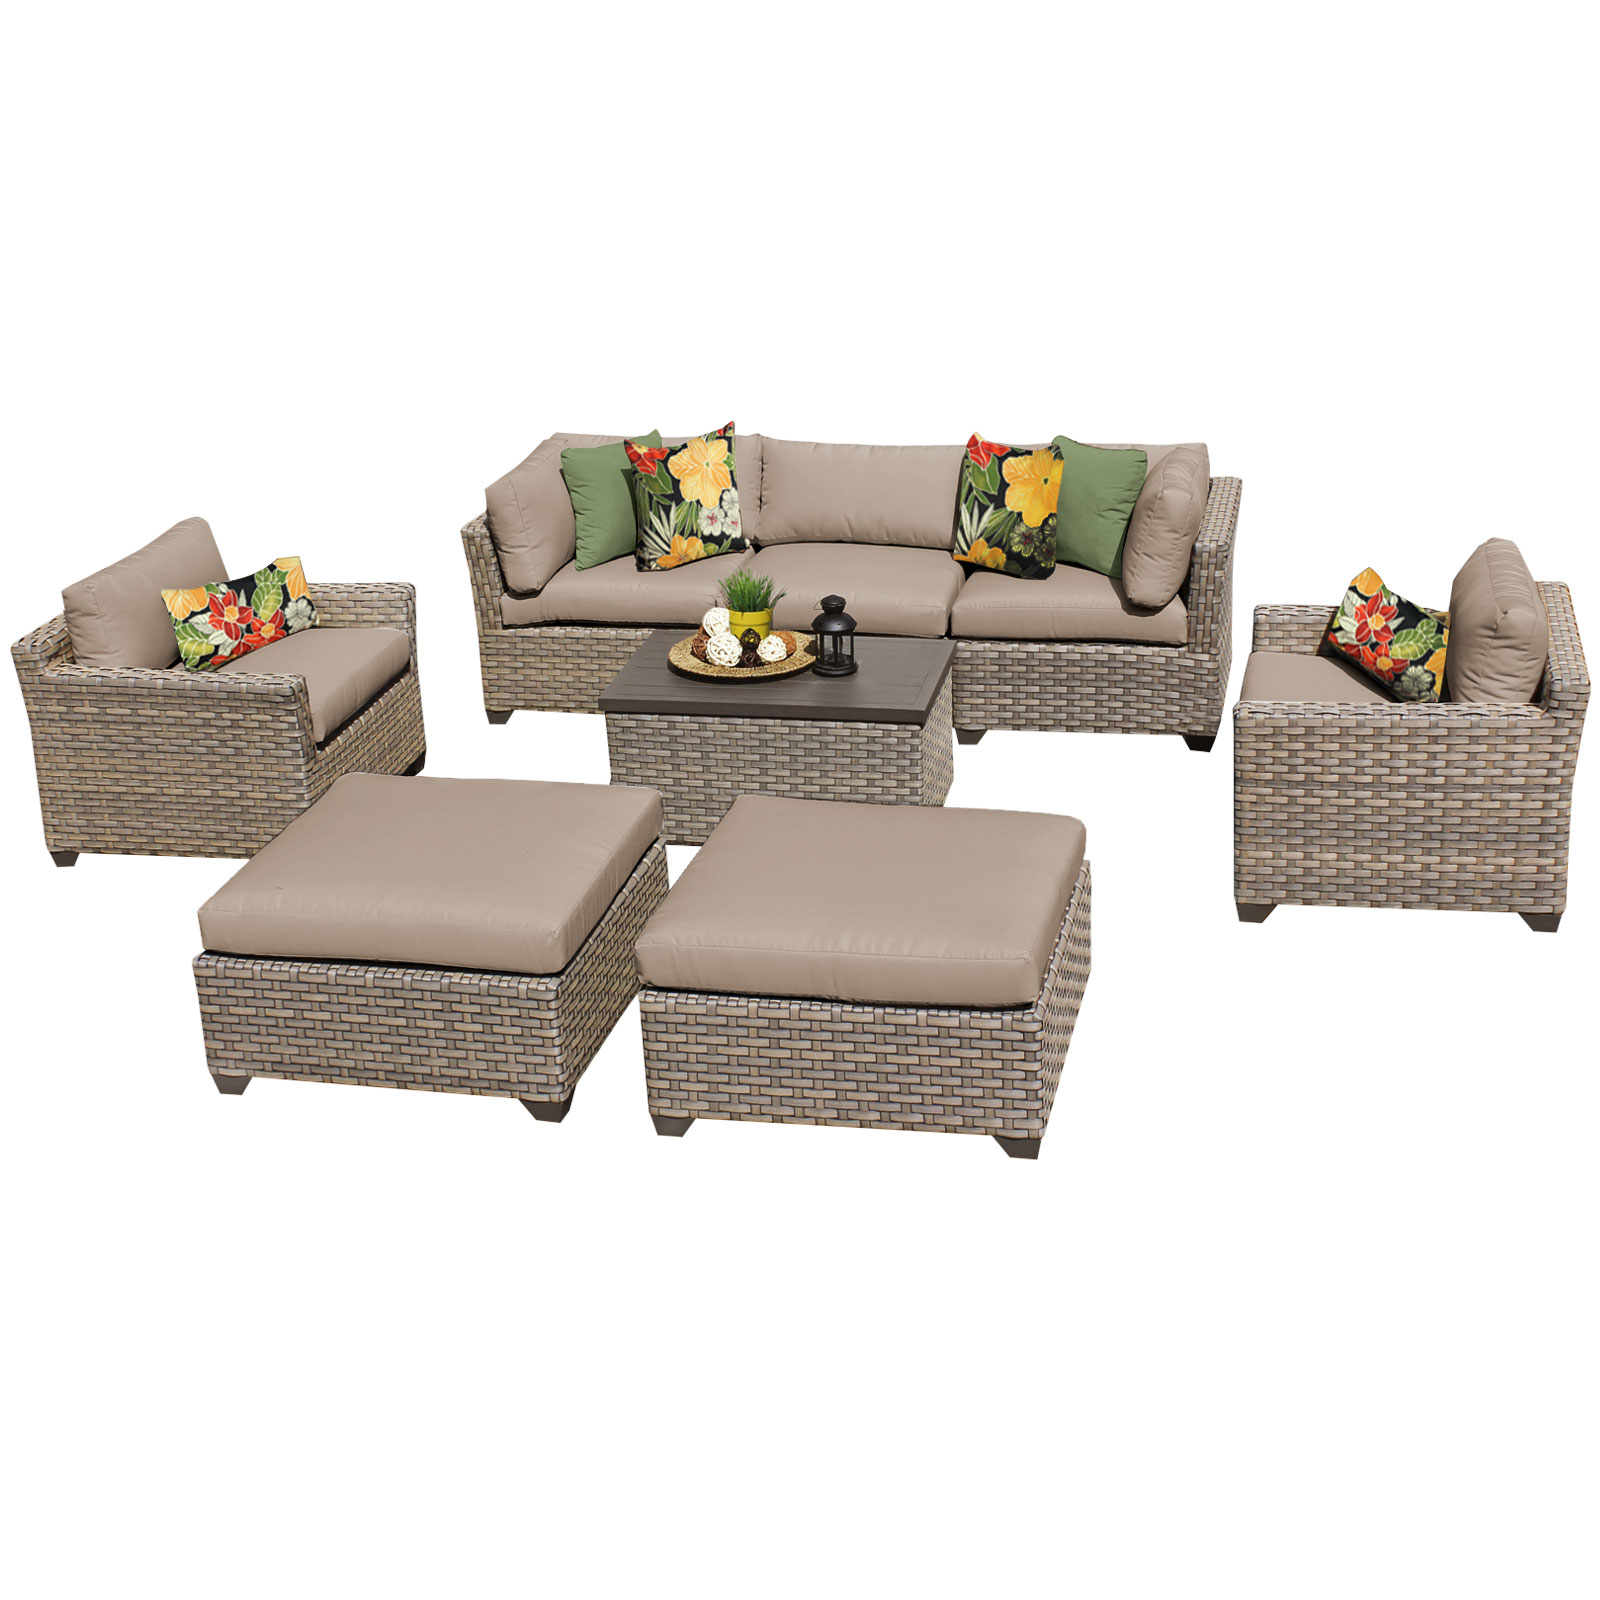 Hampton 8 Piece Outdoor Wicker Patio Furniture Set 08a by TK Classics